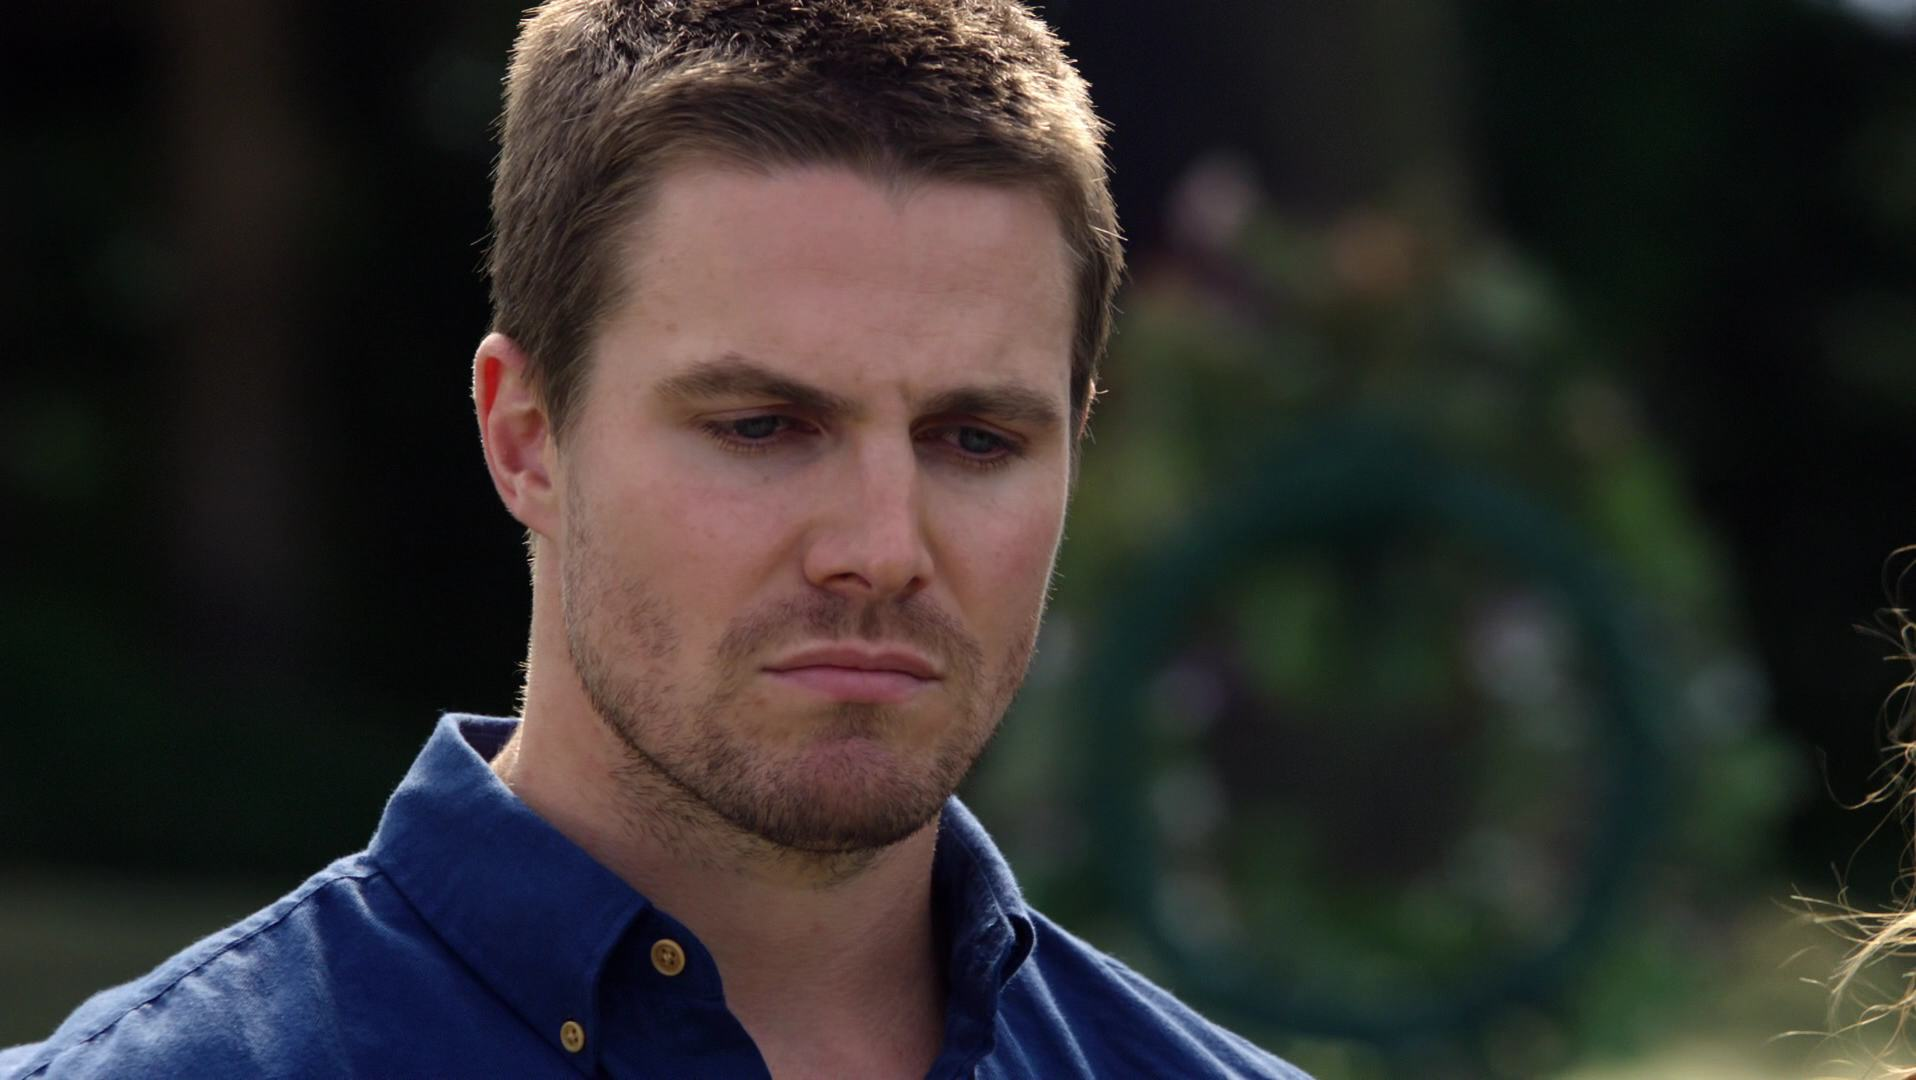 Stephen Amell Hd Wallpaper Arrow Images Oliver Queen Hd Wallpaper And Background